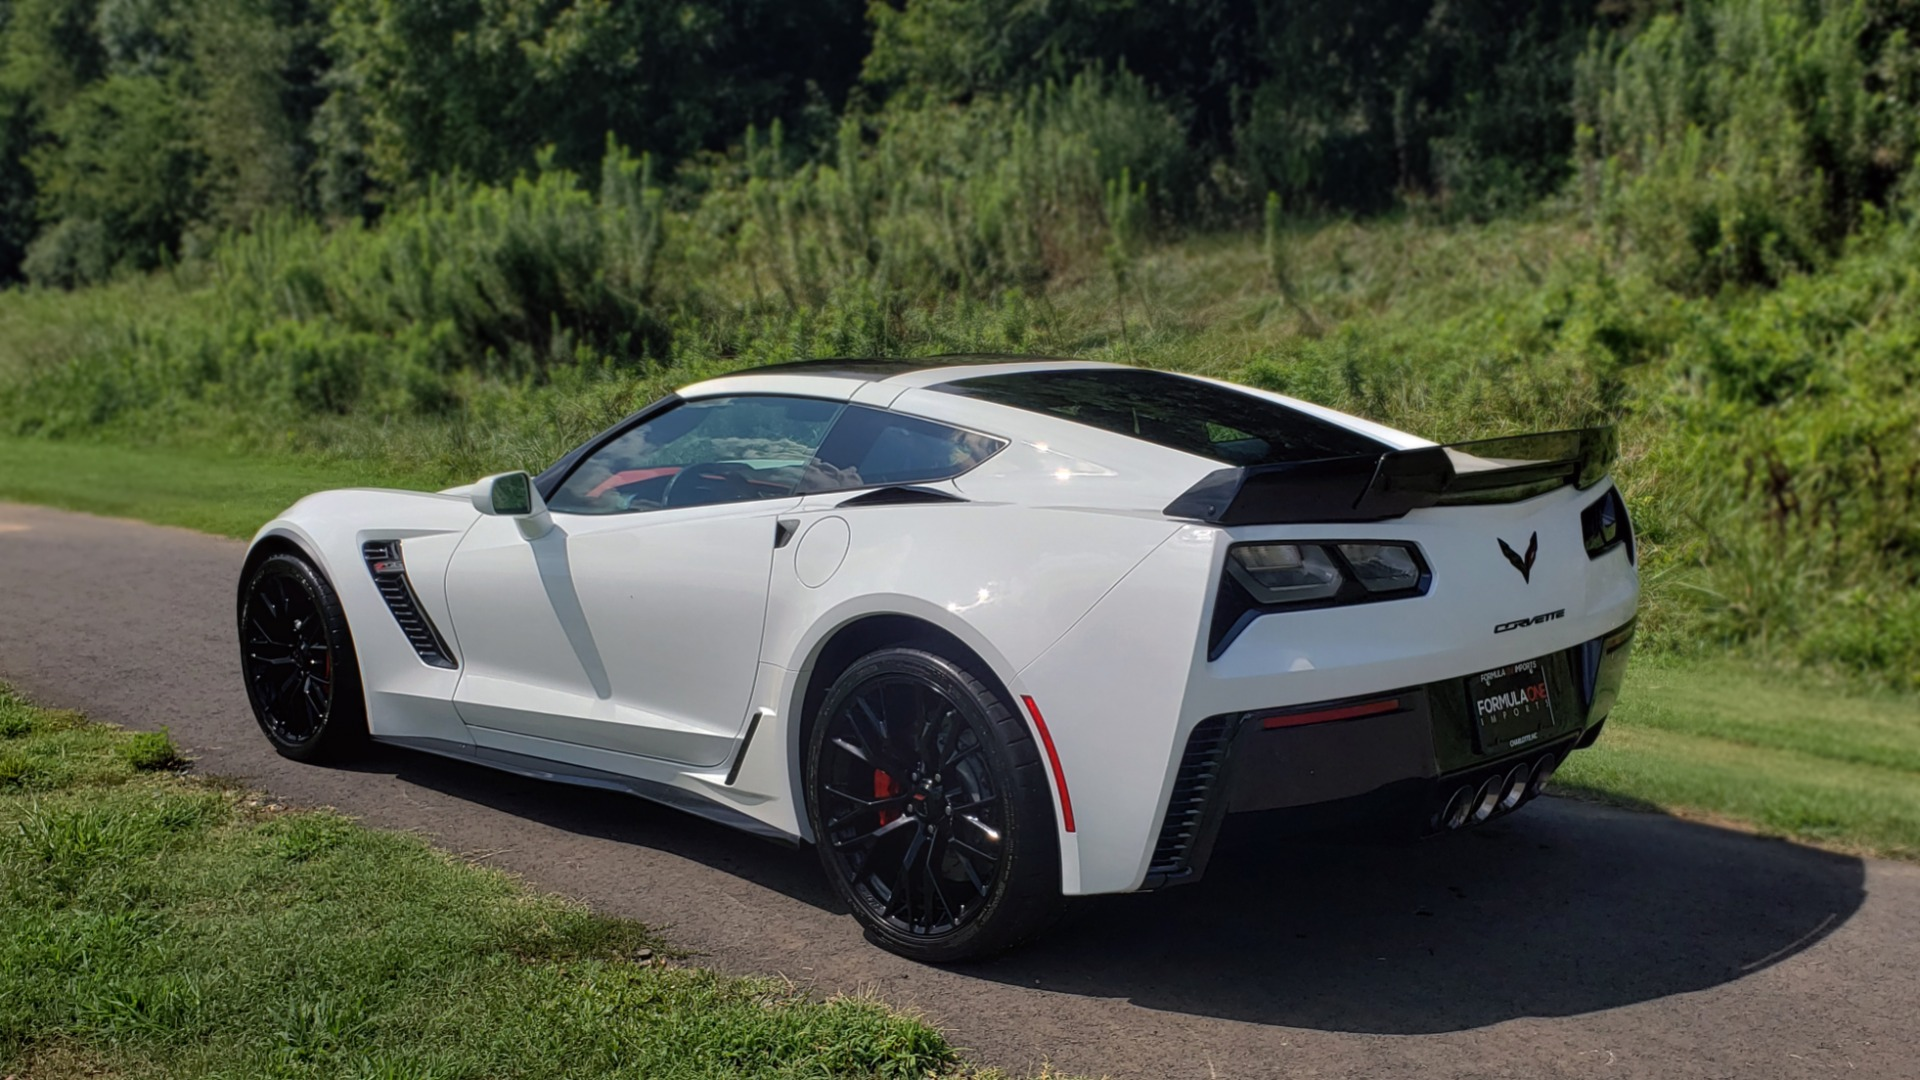 Used 2015 Chevrolet CORVETTE Z06 3LZ / 6.2L SUPERCHARGED 650HP / NAV / BOSE / REARVIEW for sale Sold at Formula Imports in Charlotte NC 28227 11